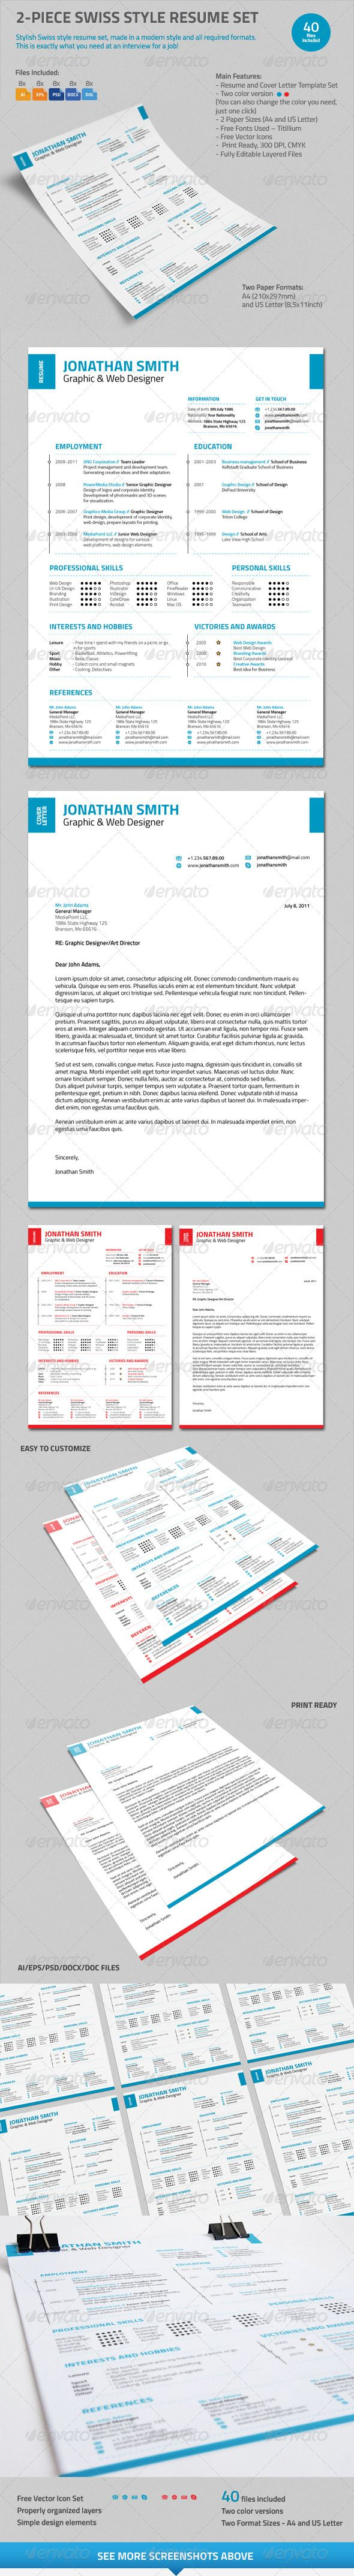 Piece Swiss Style Resume Set  Swiss Style Letterhead And Resume Cv